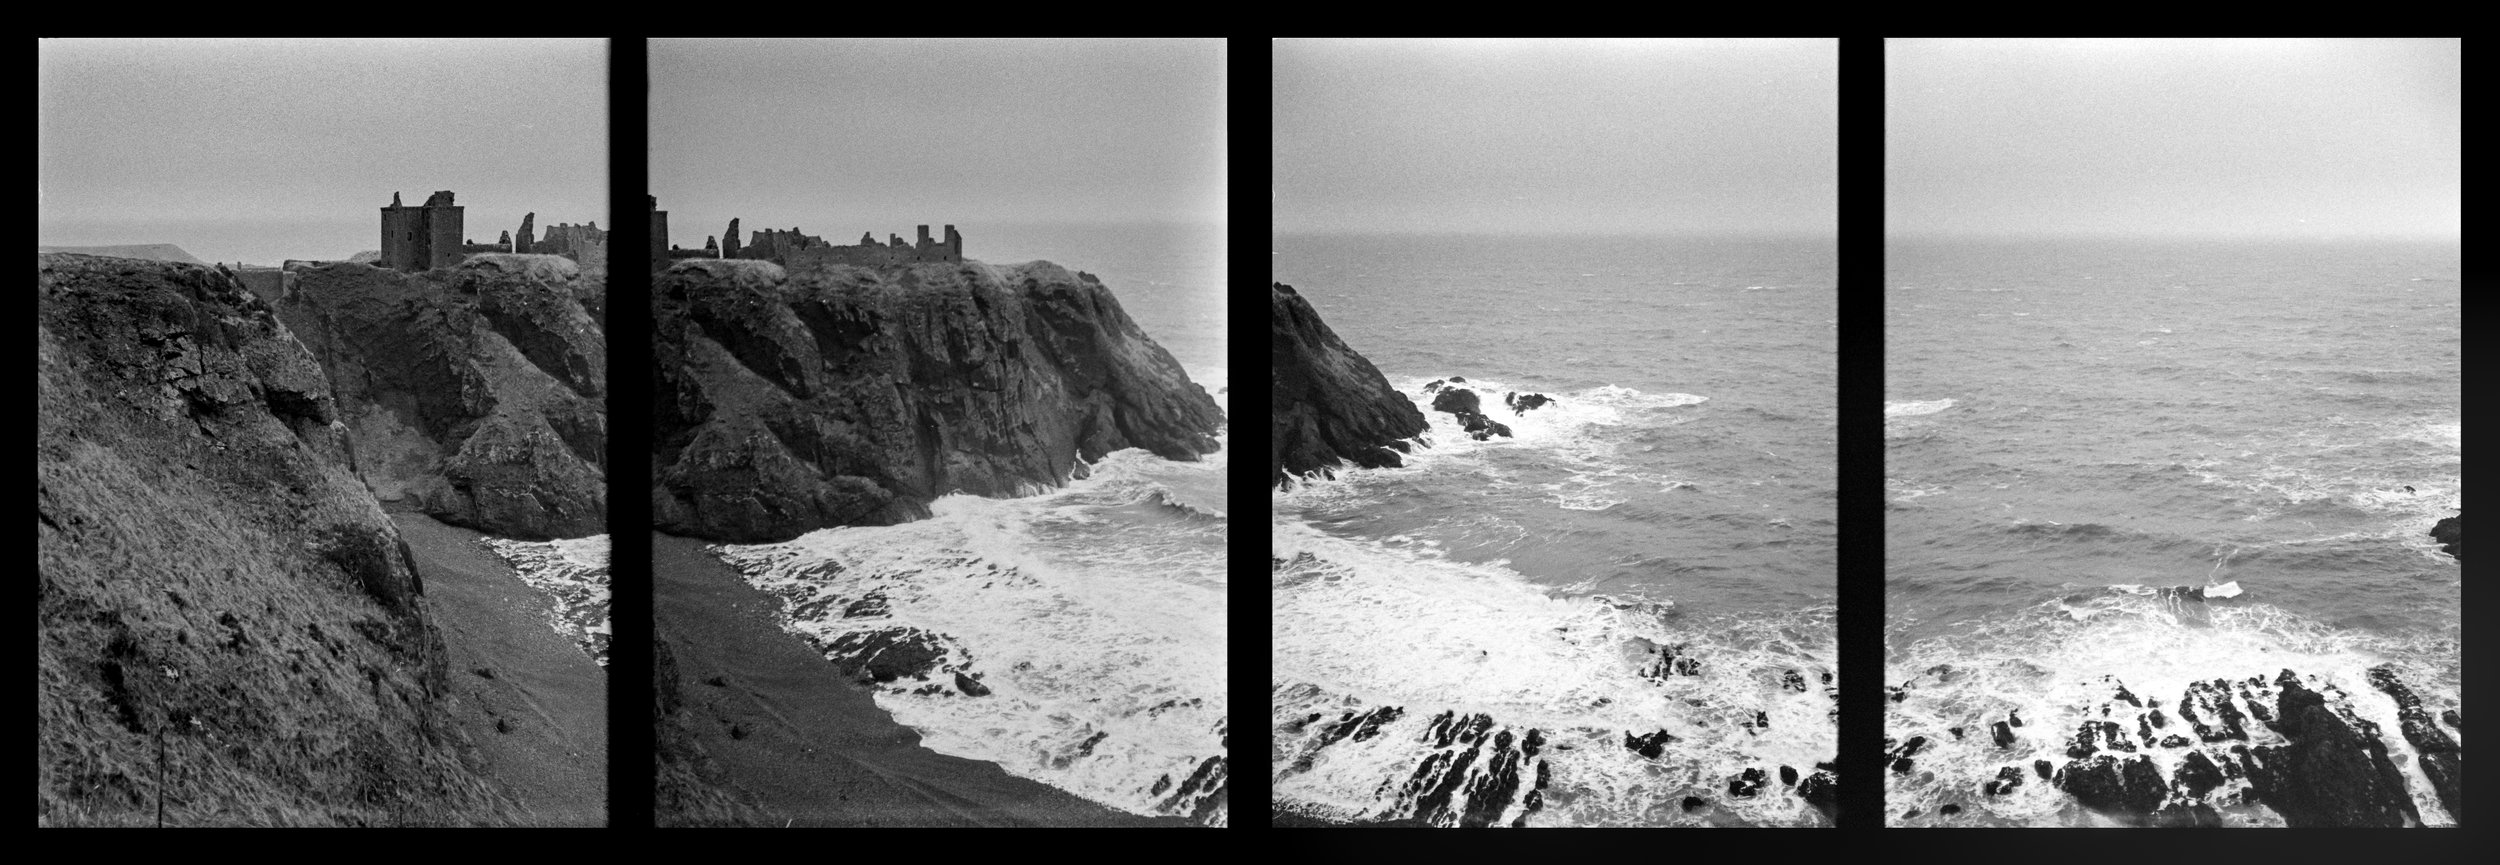 Dunottar Castle Panorama, shot on Canon Multi Tele